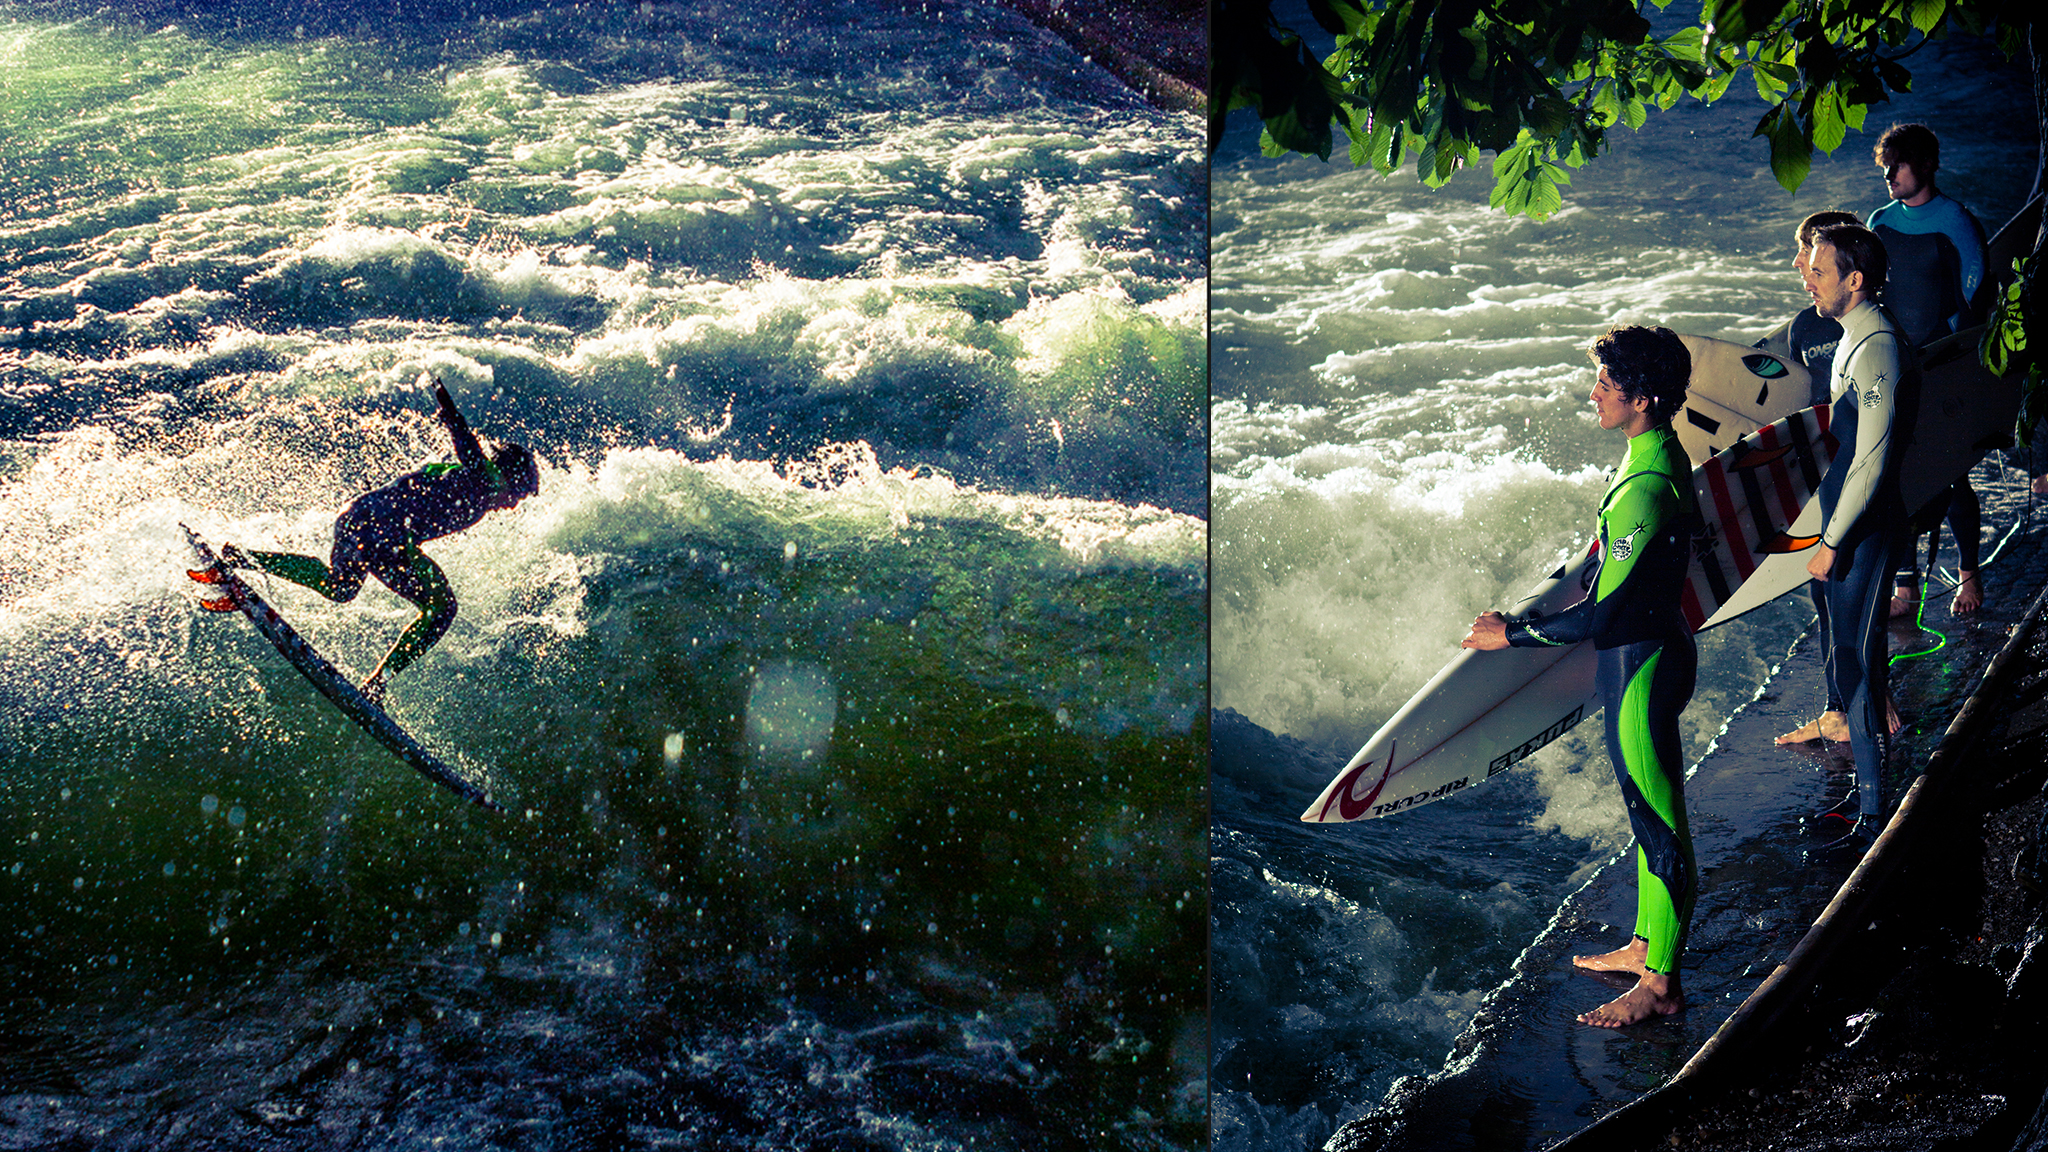 The Eisbach River, Munich